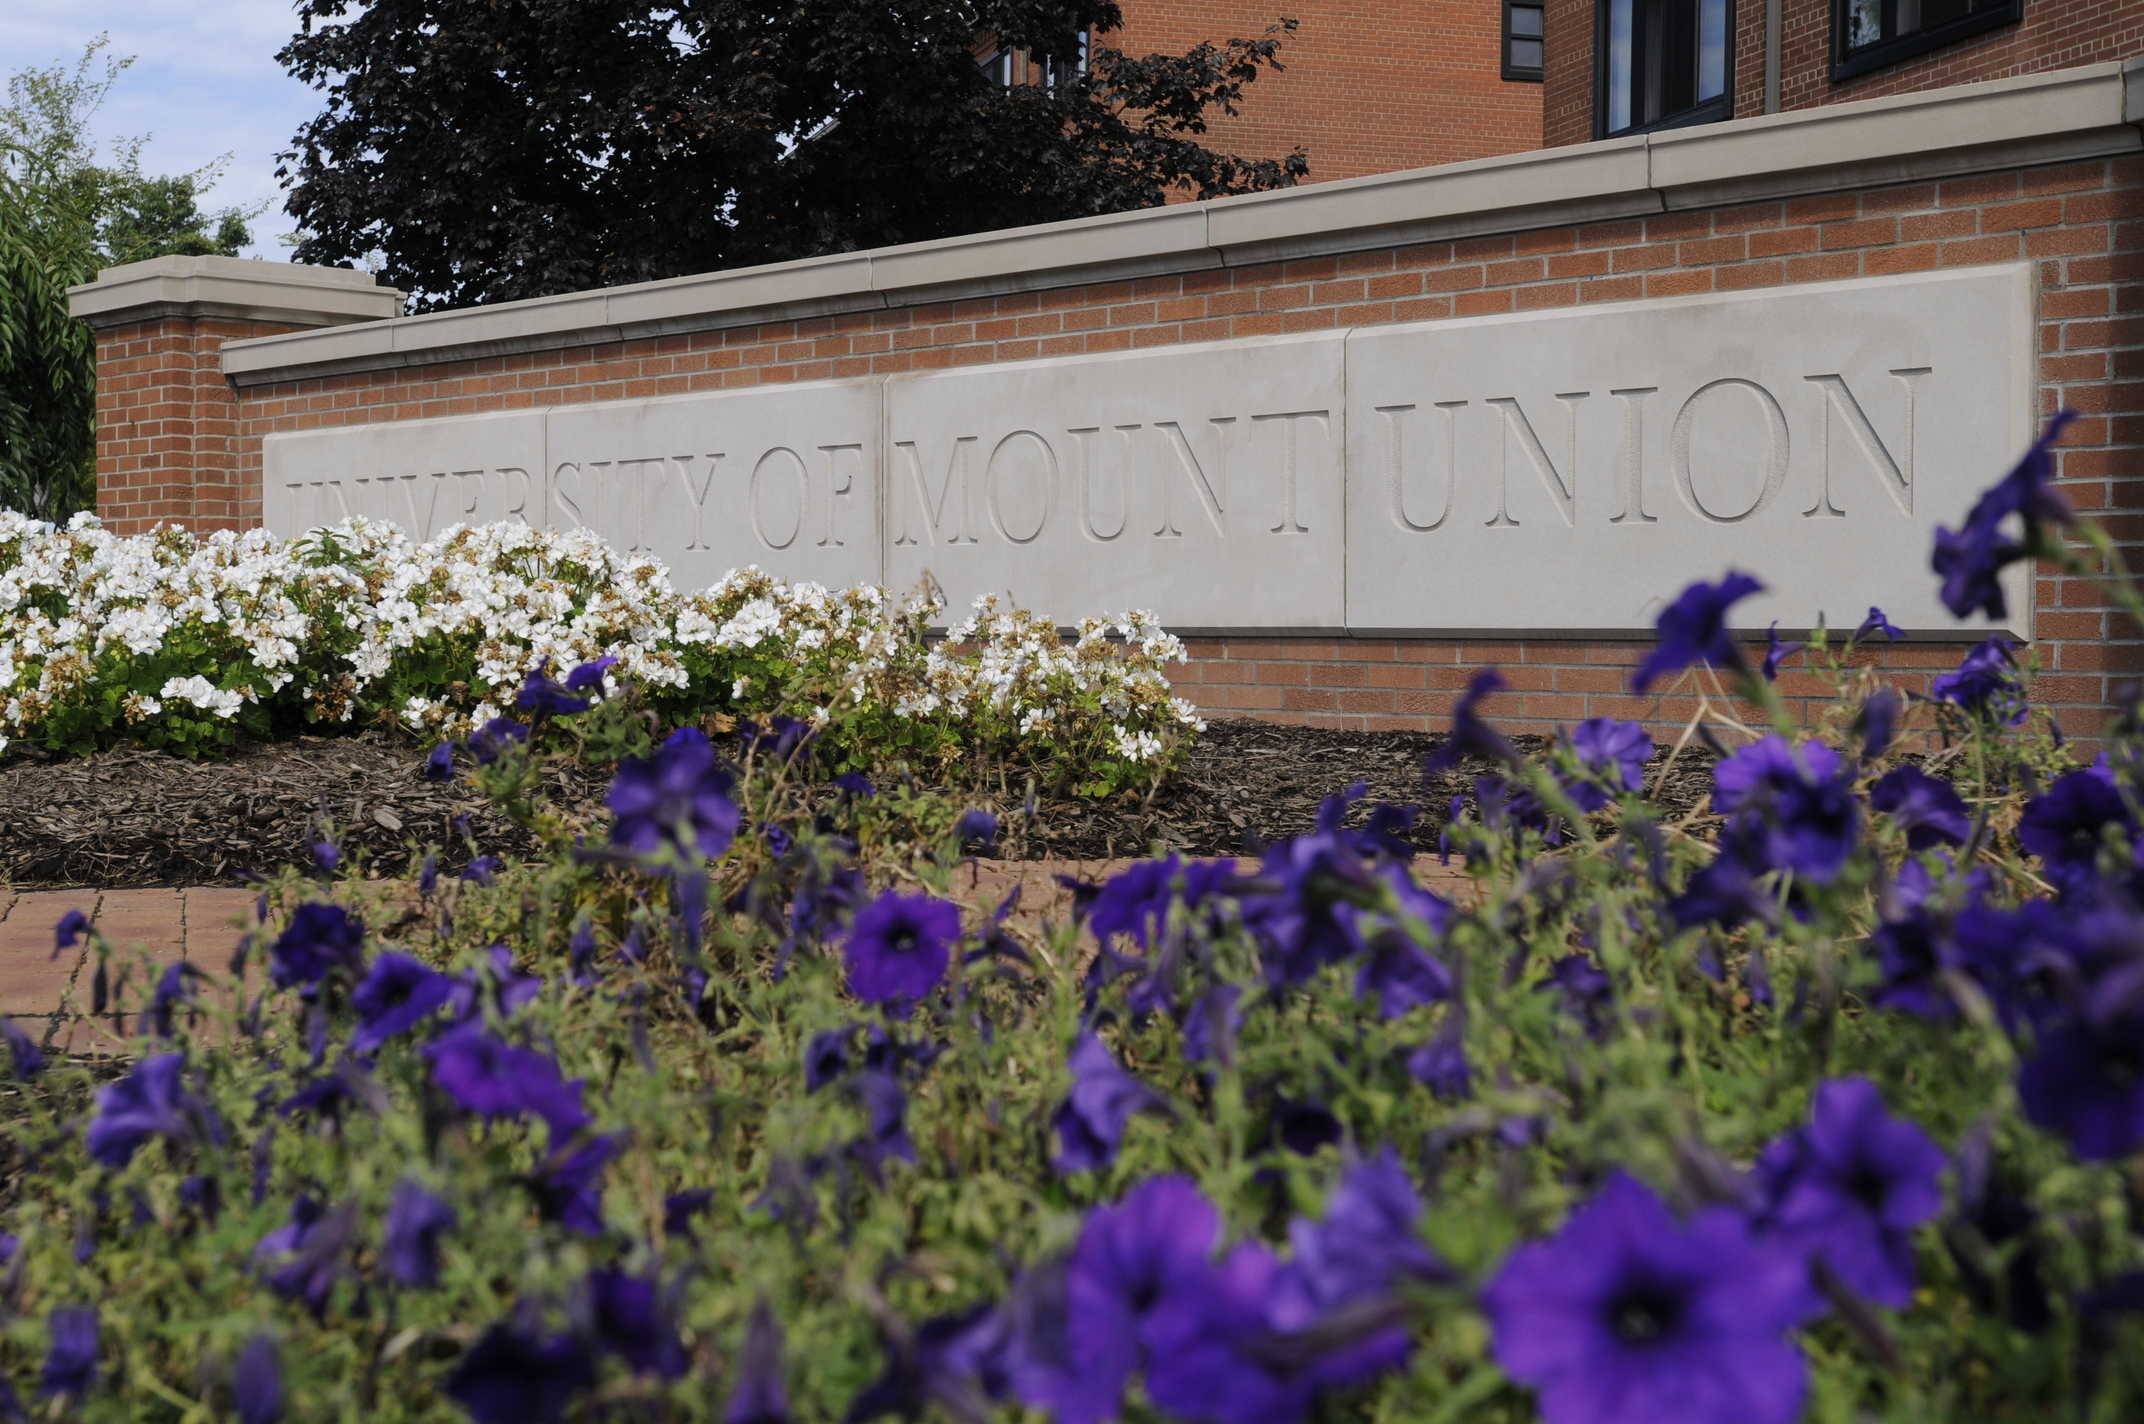 mount union sign with flowers